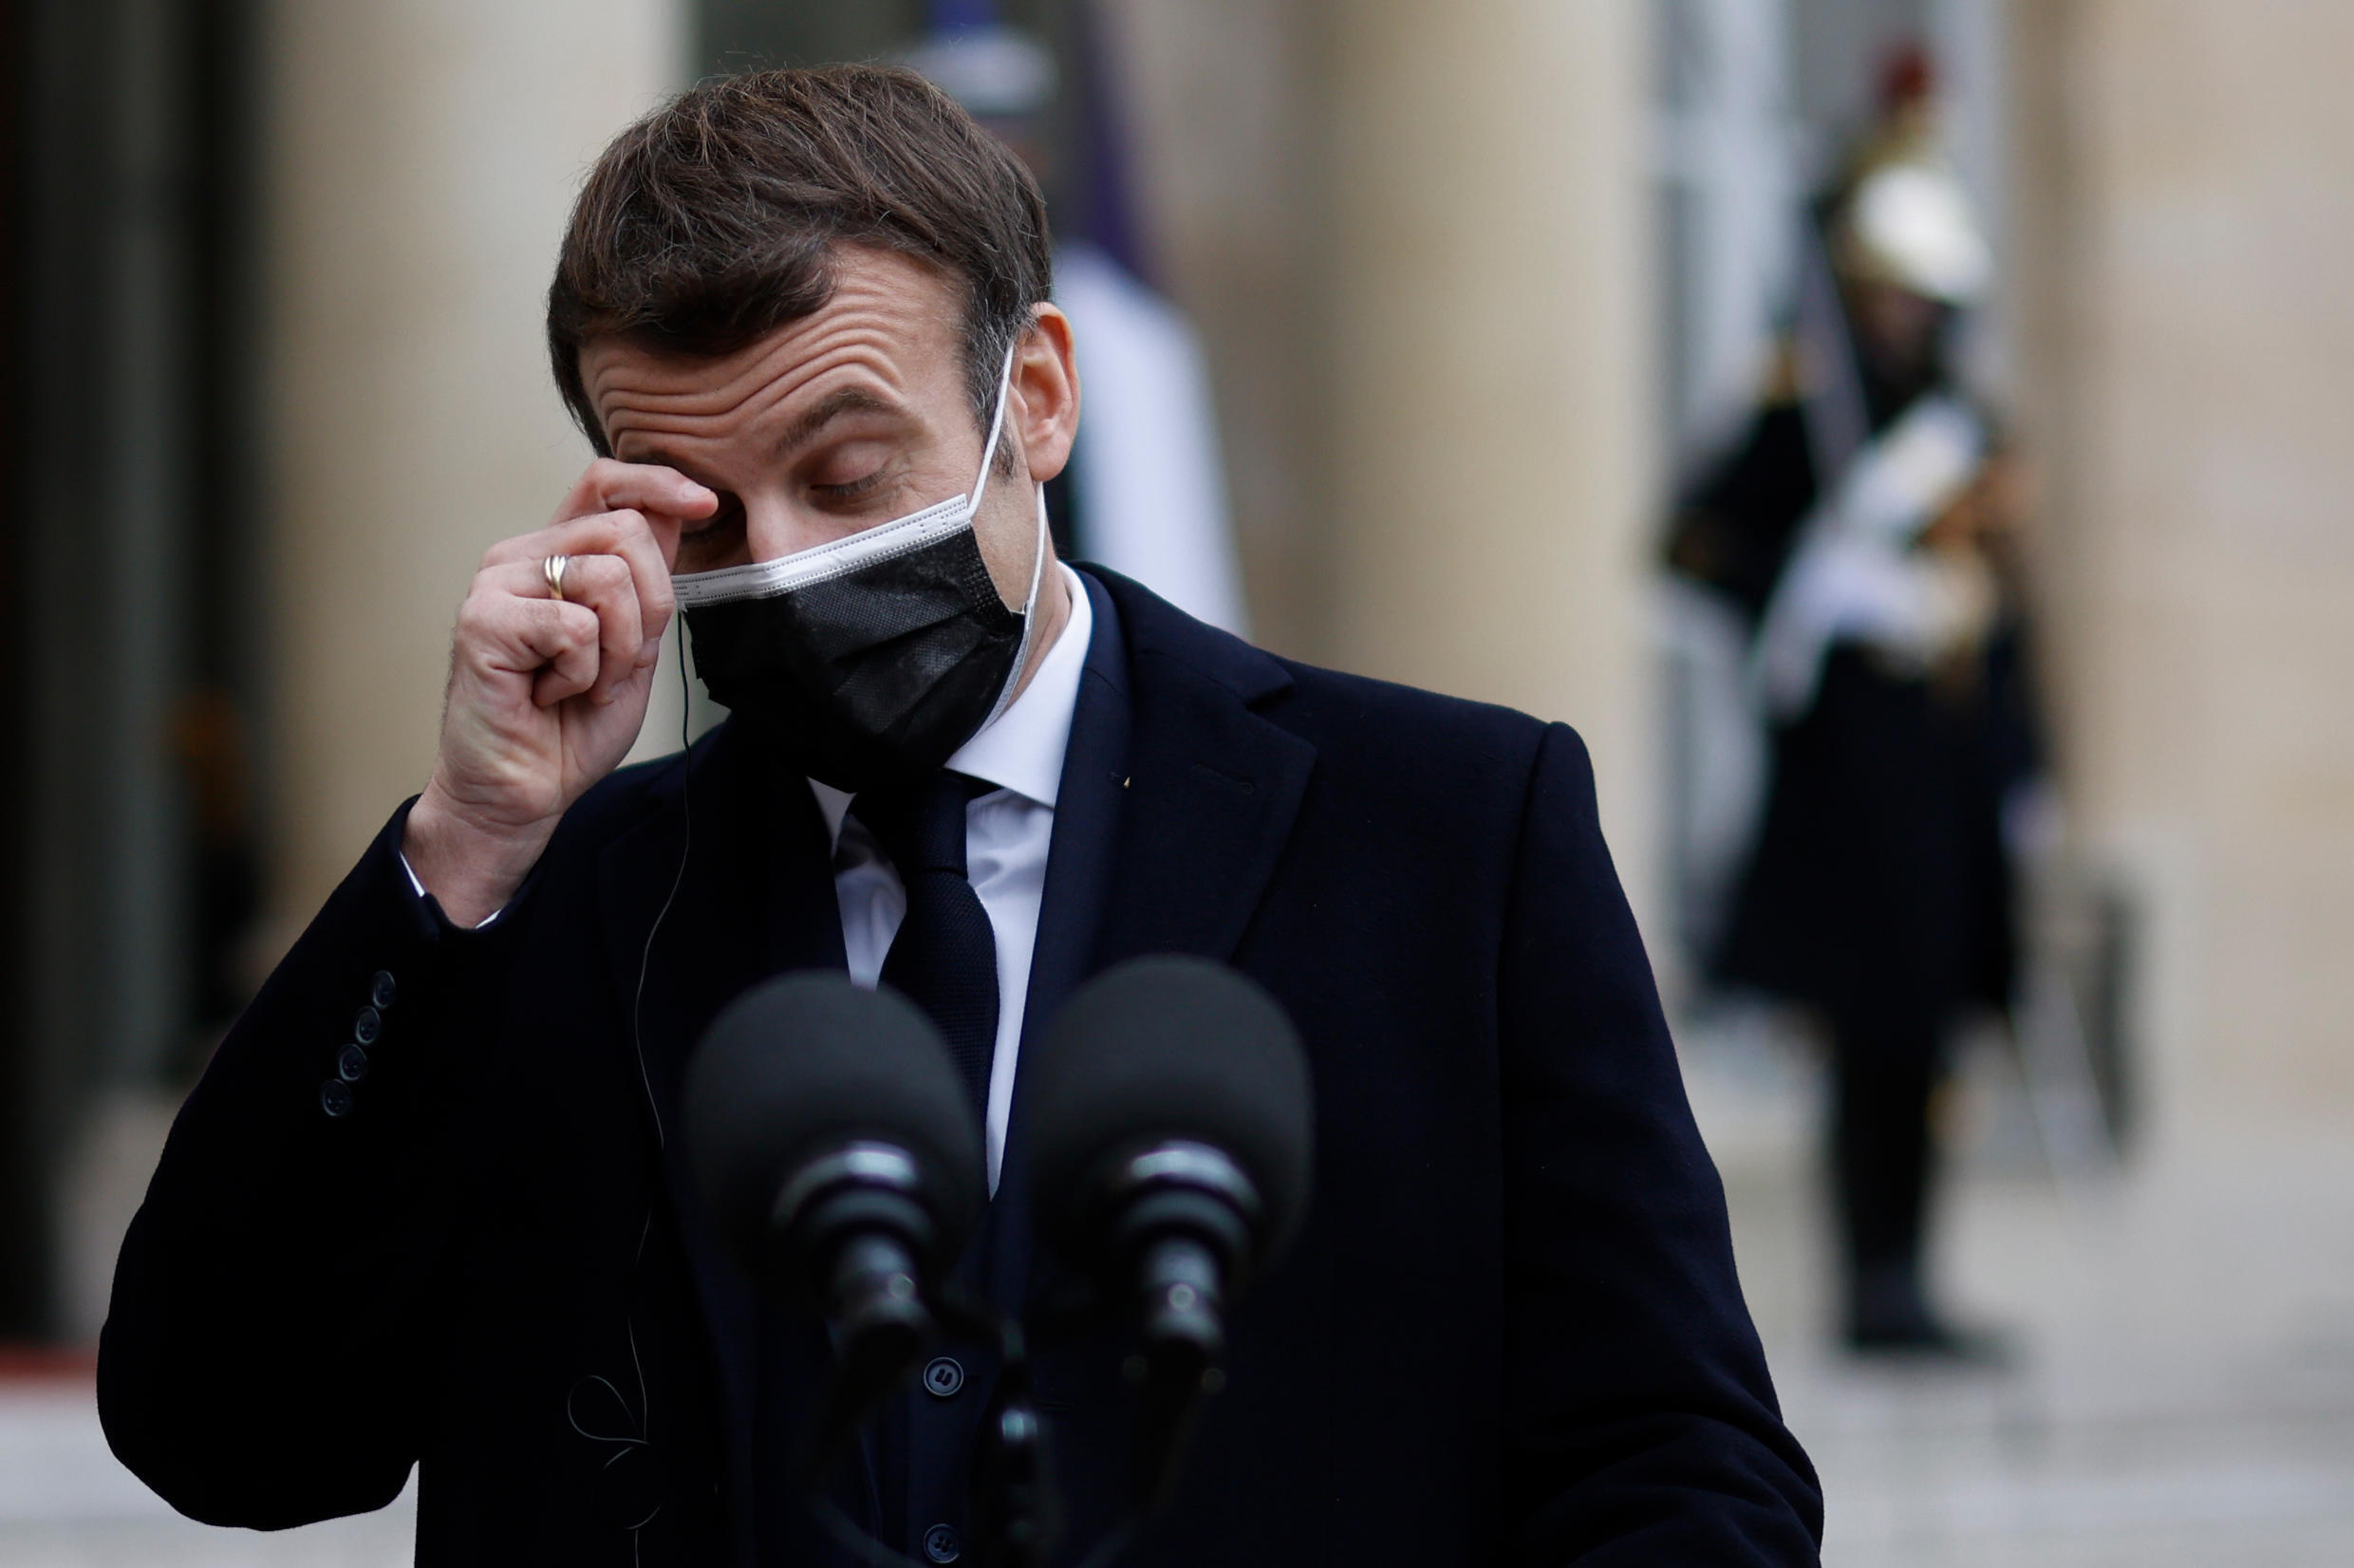 French President Emmanuel Macron scratches his eye as he addresses the press upon the arrival of Portugal's prime minister for a working lunch at the Élysée presidential palace in Paris on December 16, 2020.